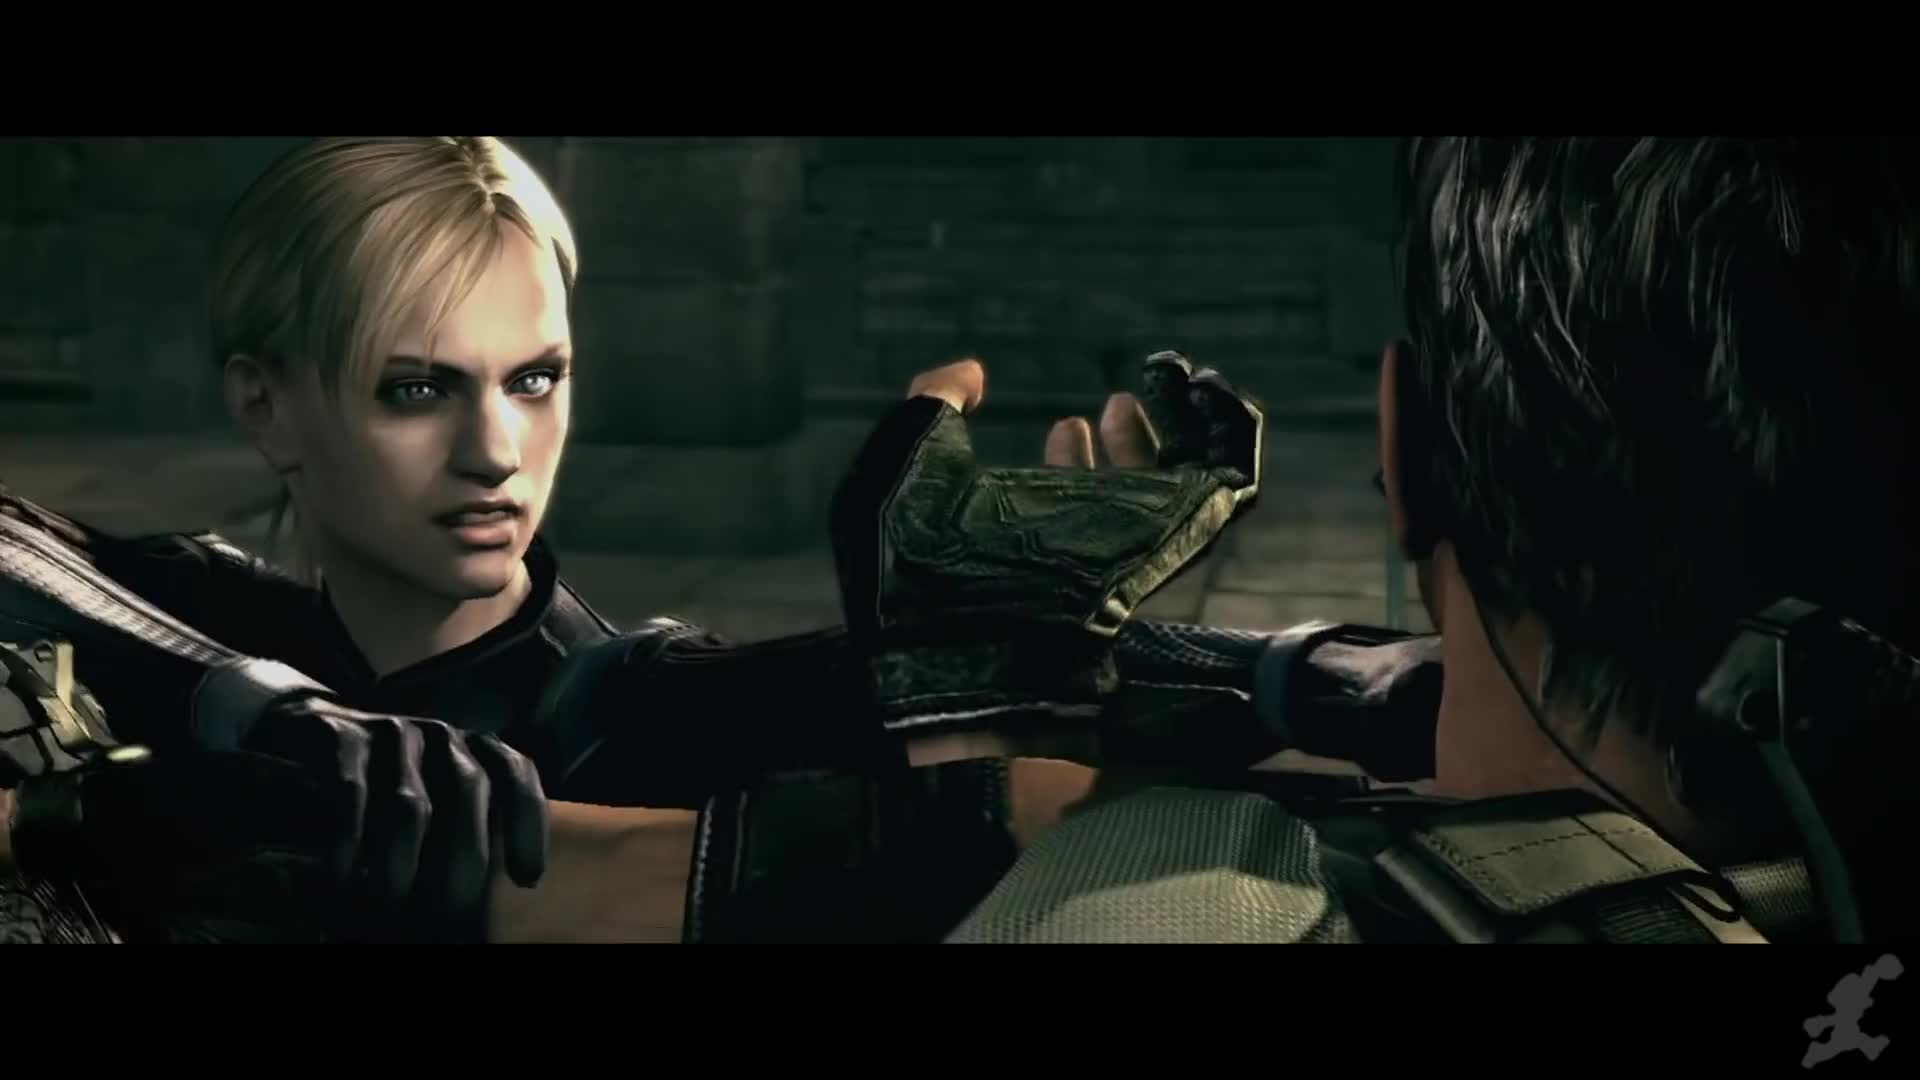 Resident Evil 5 Game Movie All Cutscenes 1080p Hd Gif Gfycat